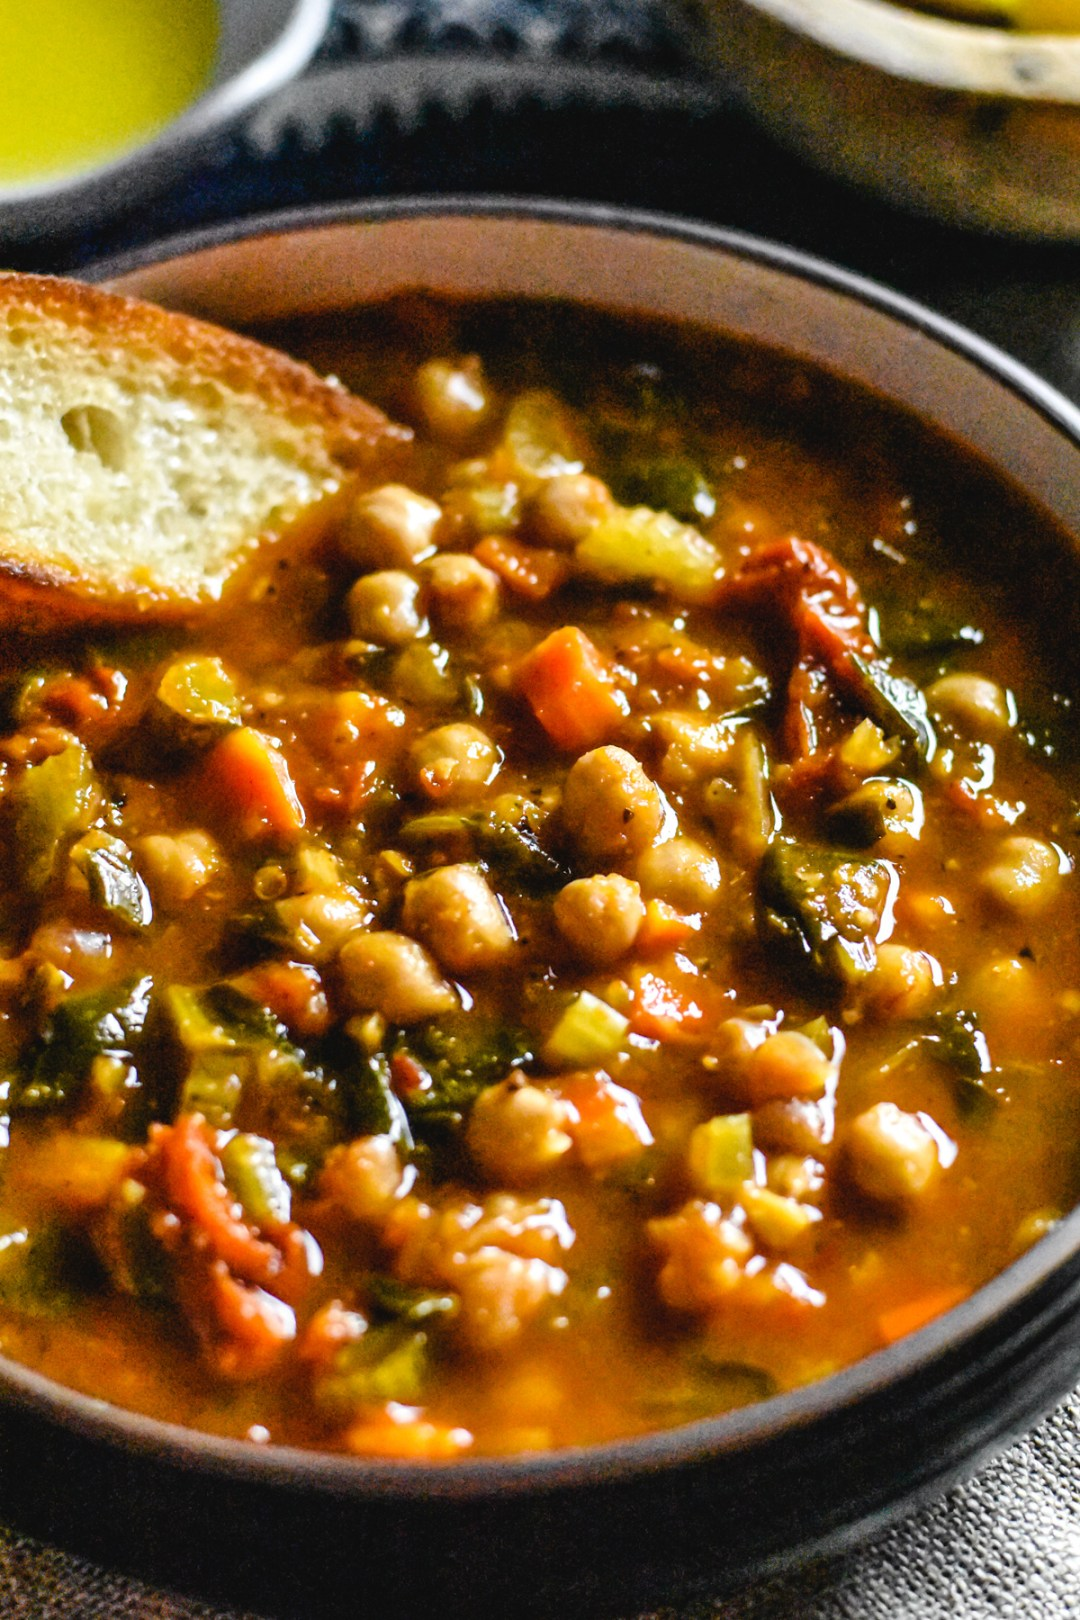 A bowl of moroccan chickpea soup served with olive oil